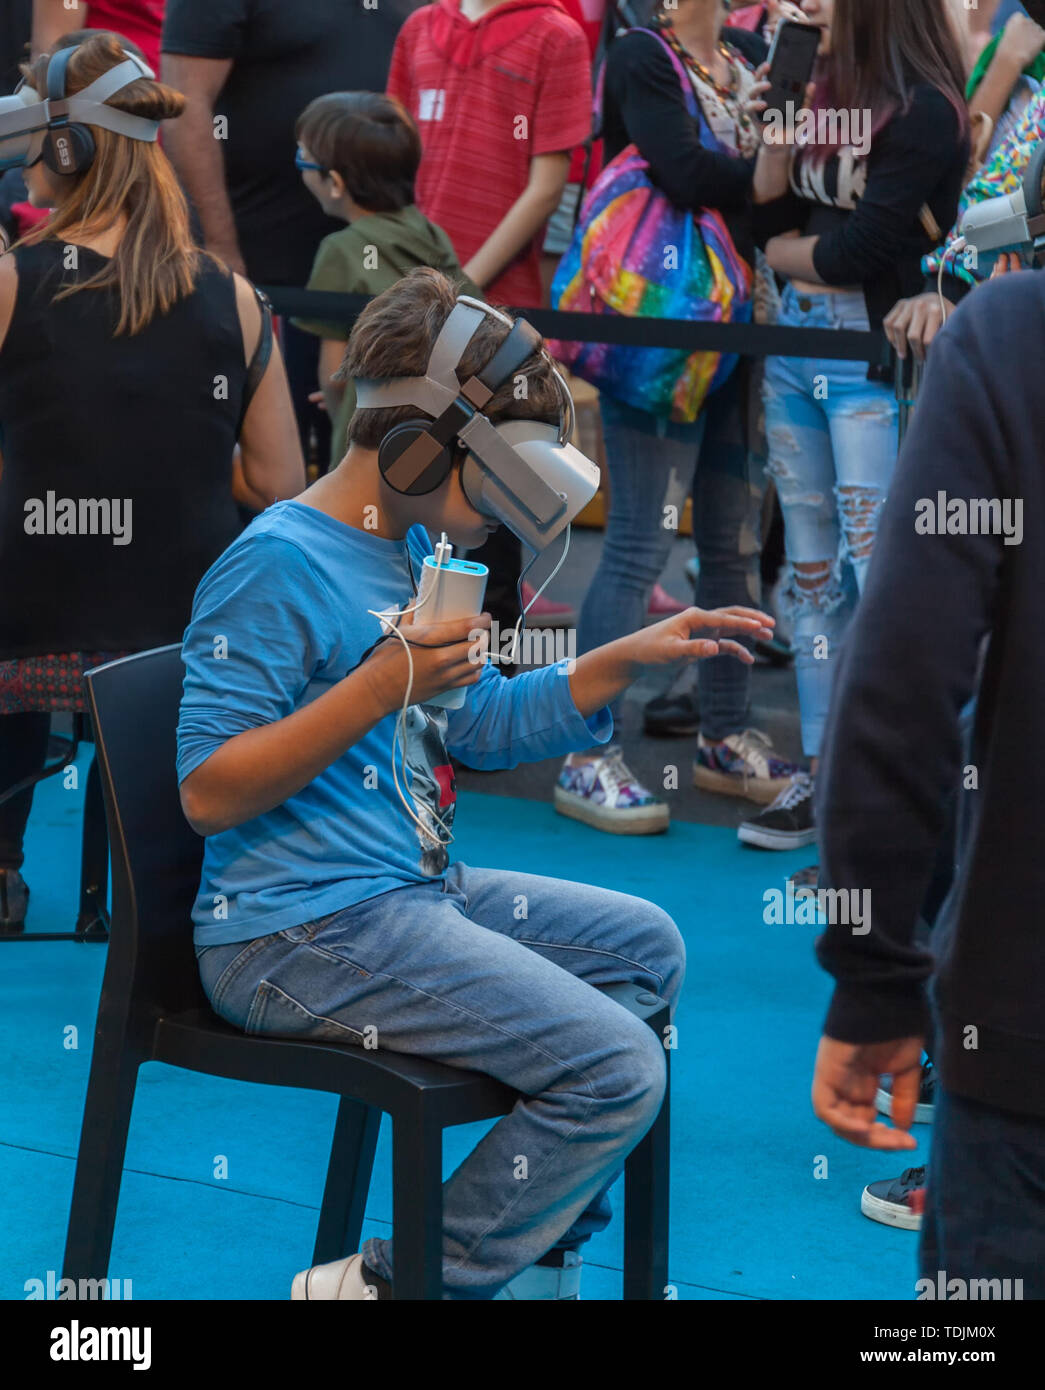 A boy and girl explore the possibilities of virtual reality glasses at a street exhibition, on Santelmo Avenue, Buenos Aires, Argentina. May 15, 2019. - Stock Image